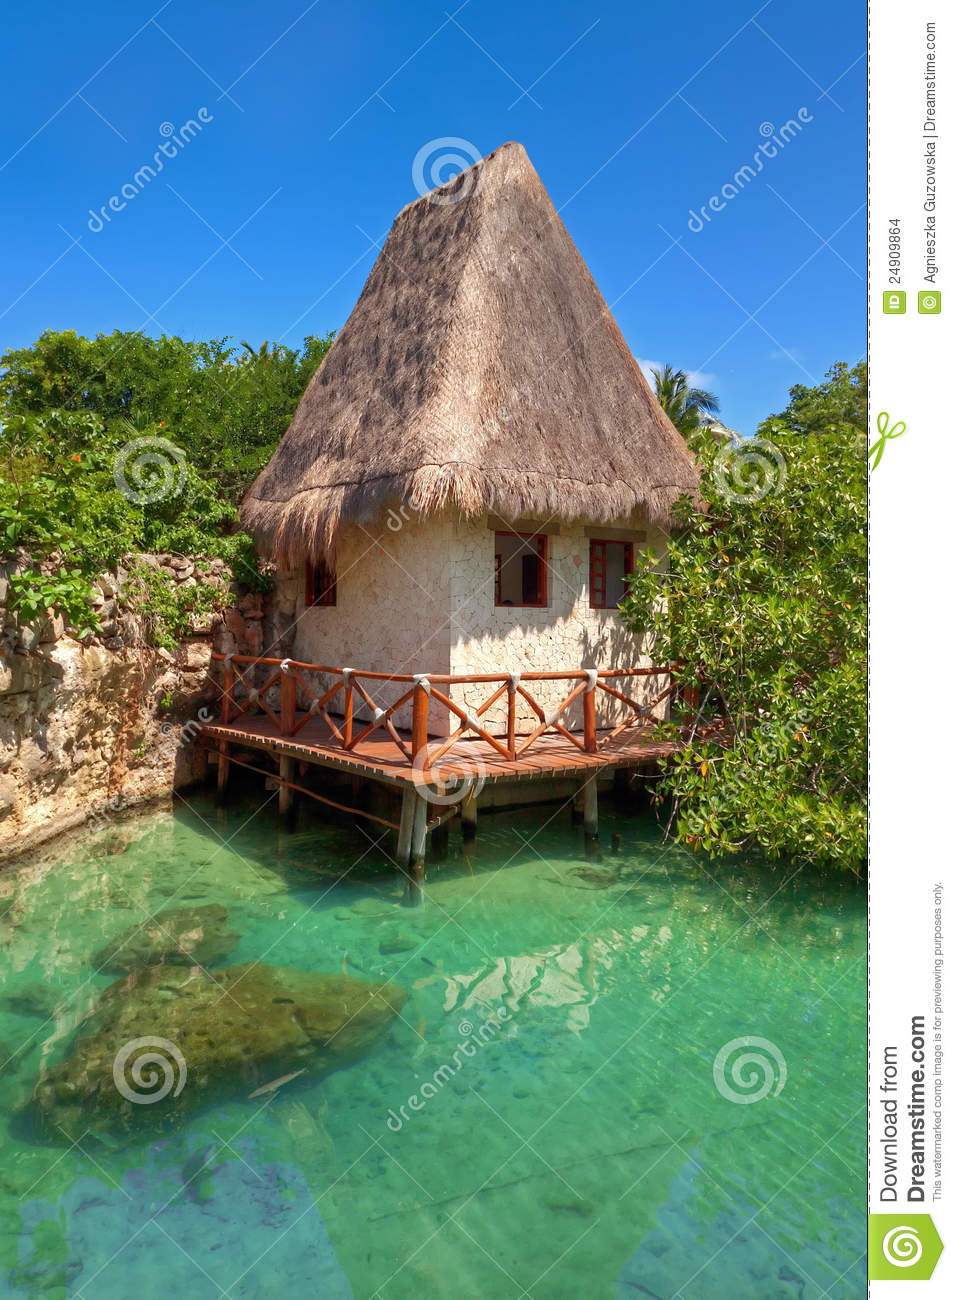 paysage mexicain idyllique de jungle images stock image 24909864. Black Bedroom Furniture Sets. Home Design Ideas